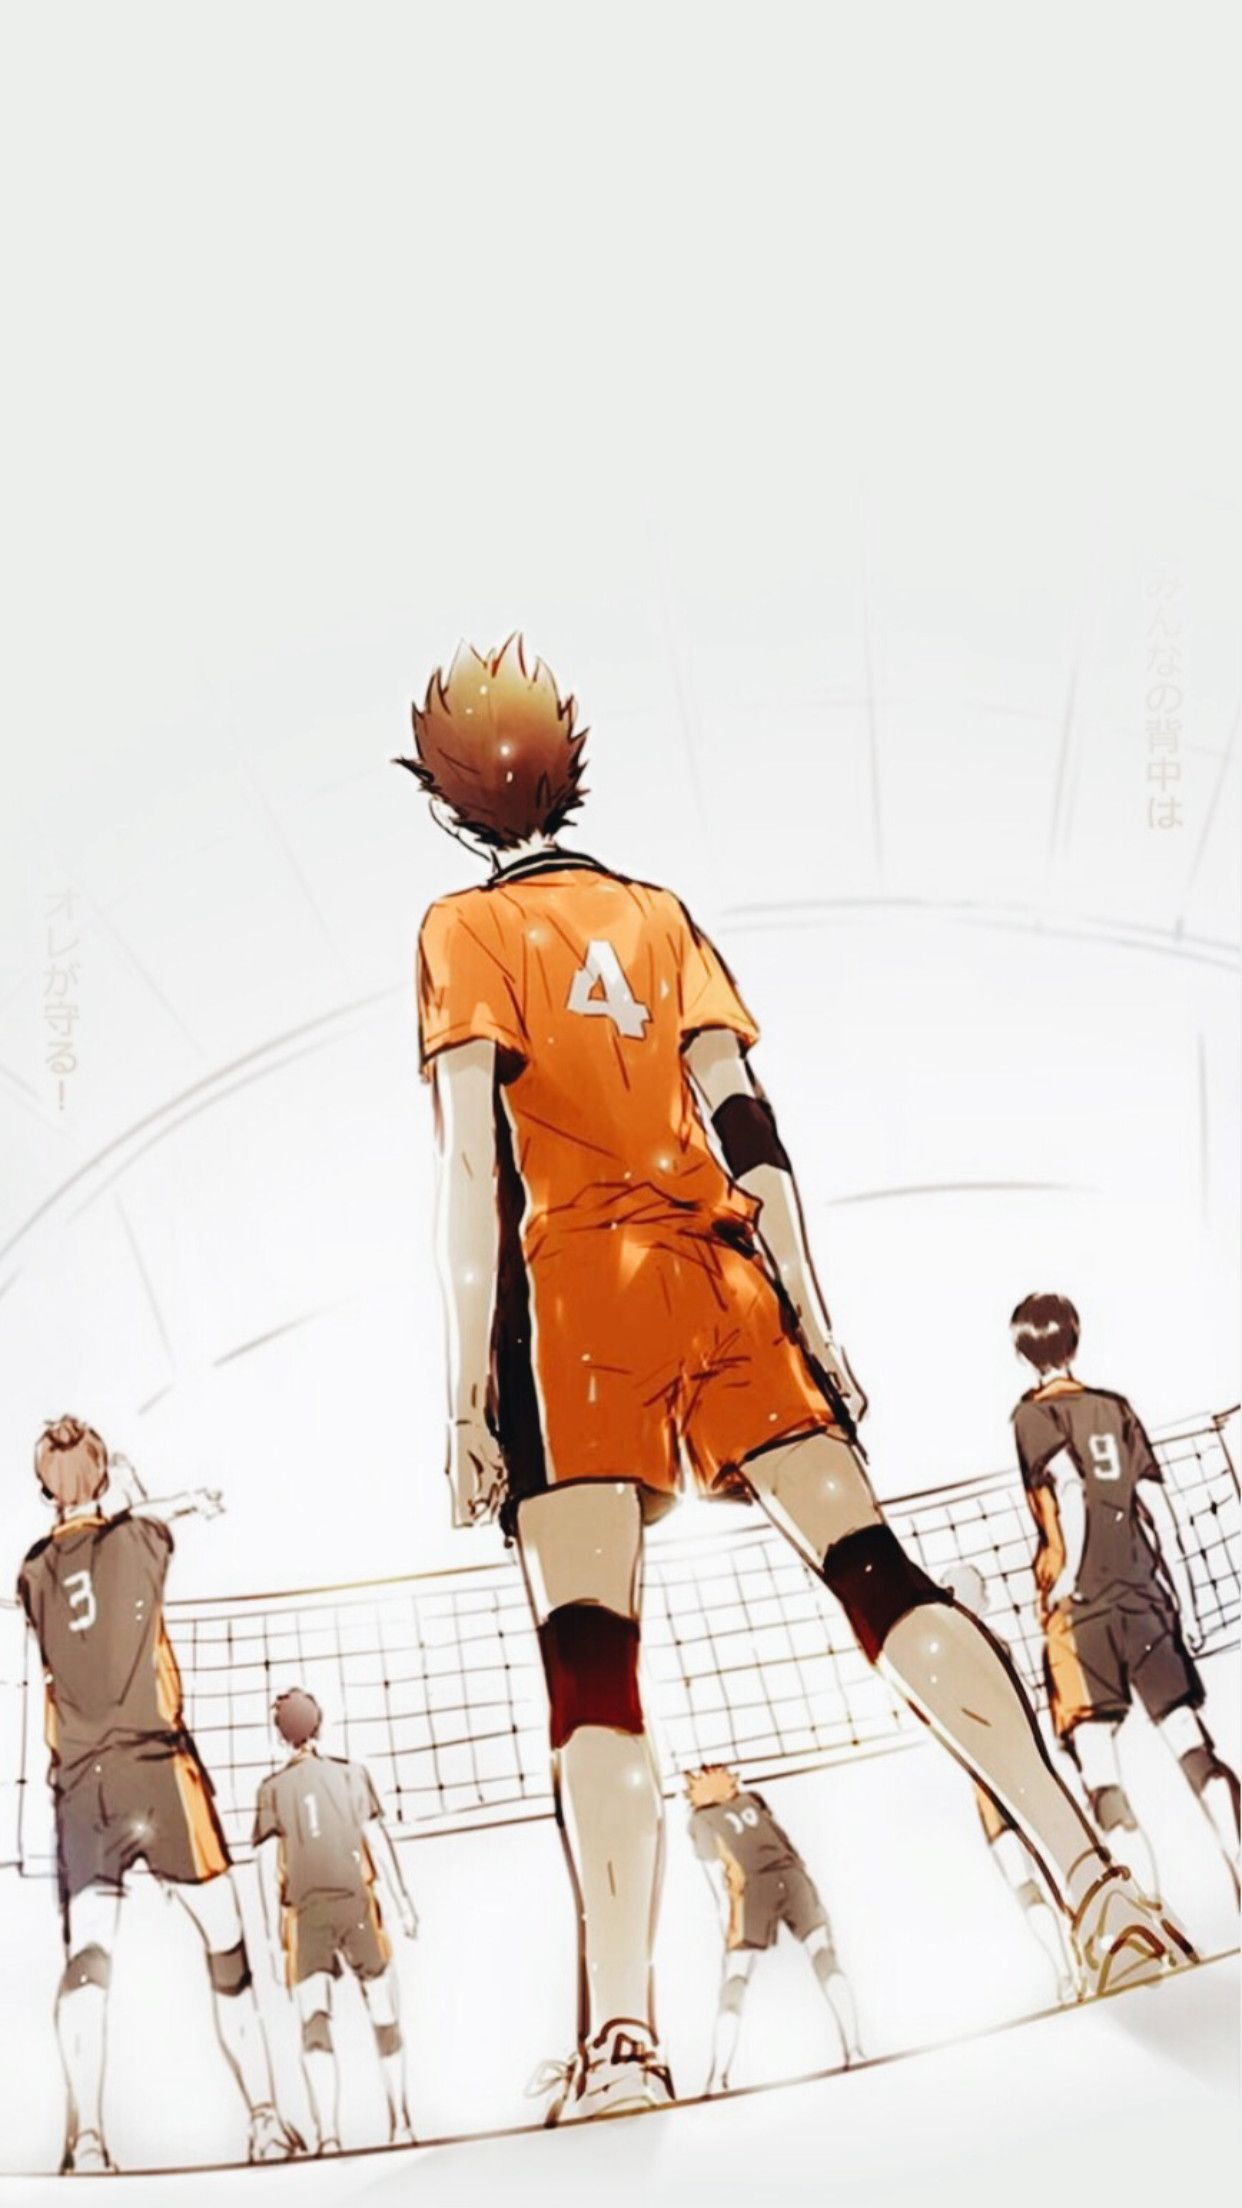 Pin By Campbellas Park On Haikyuu In 2020 Haikyuu Wallpaper Haikyuu Nishinoya Haikyuu Karasuno